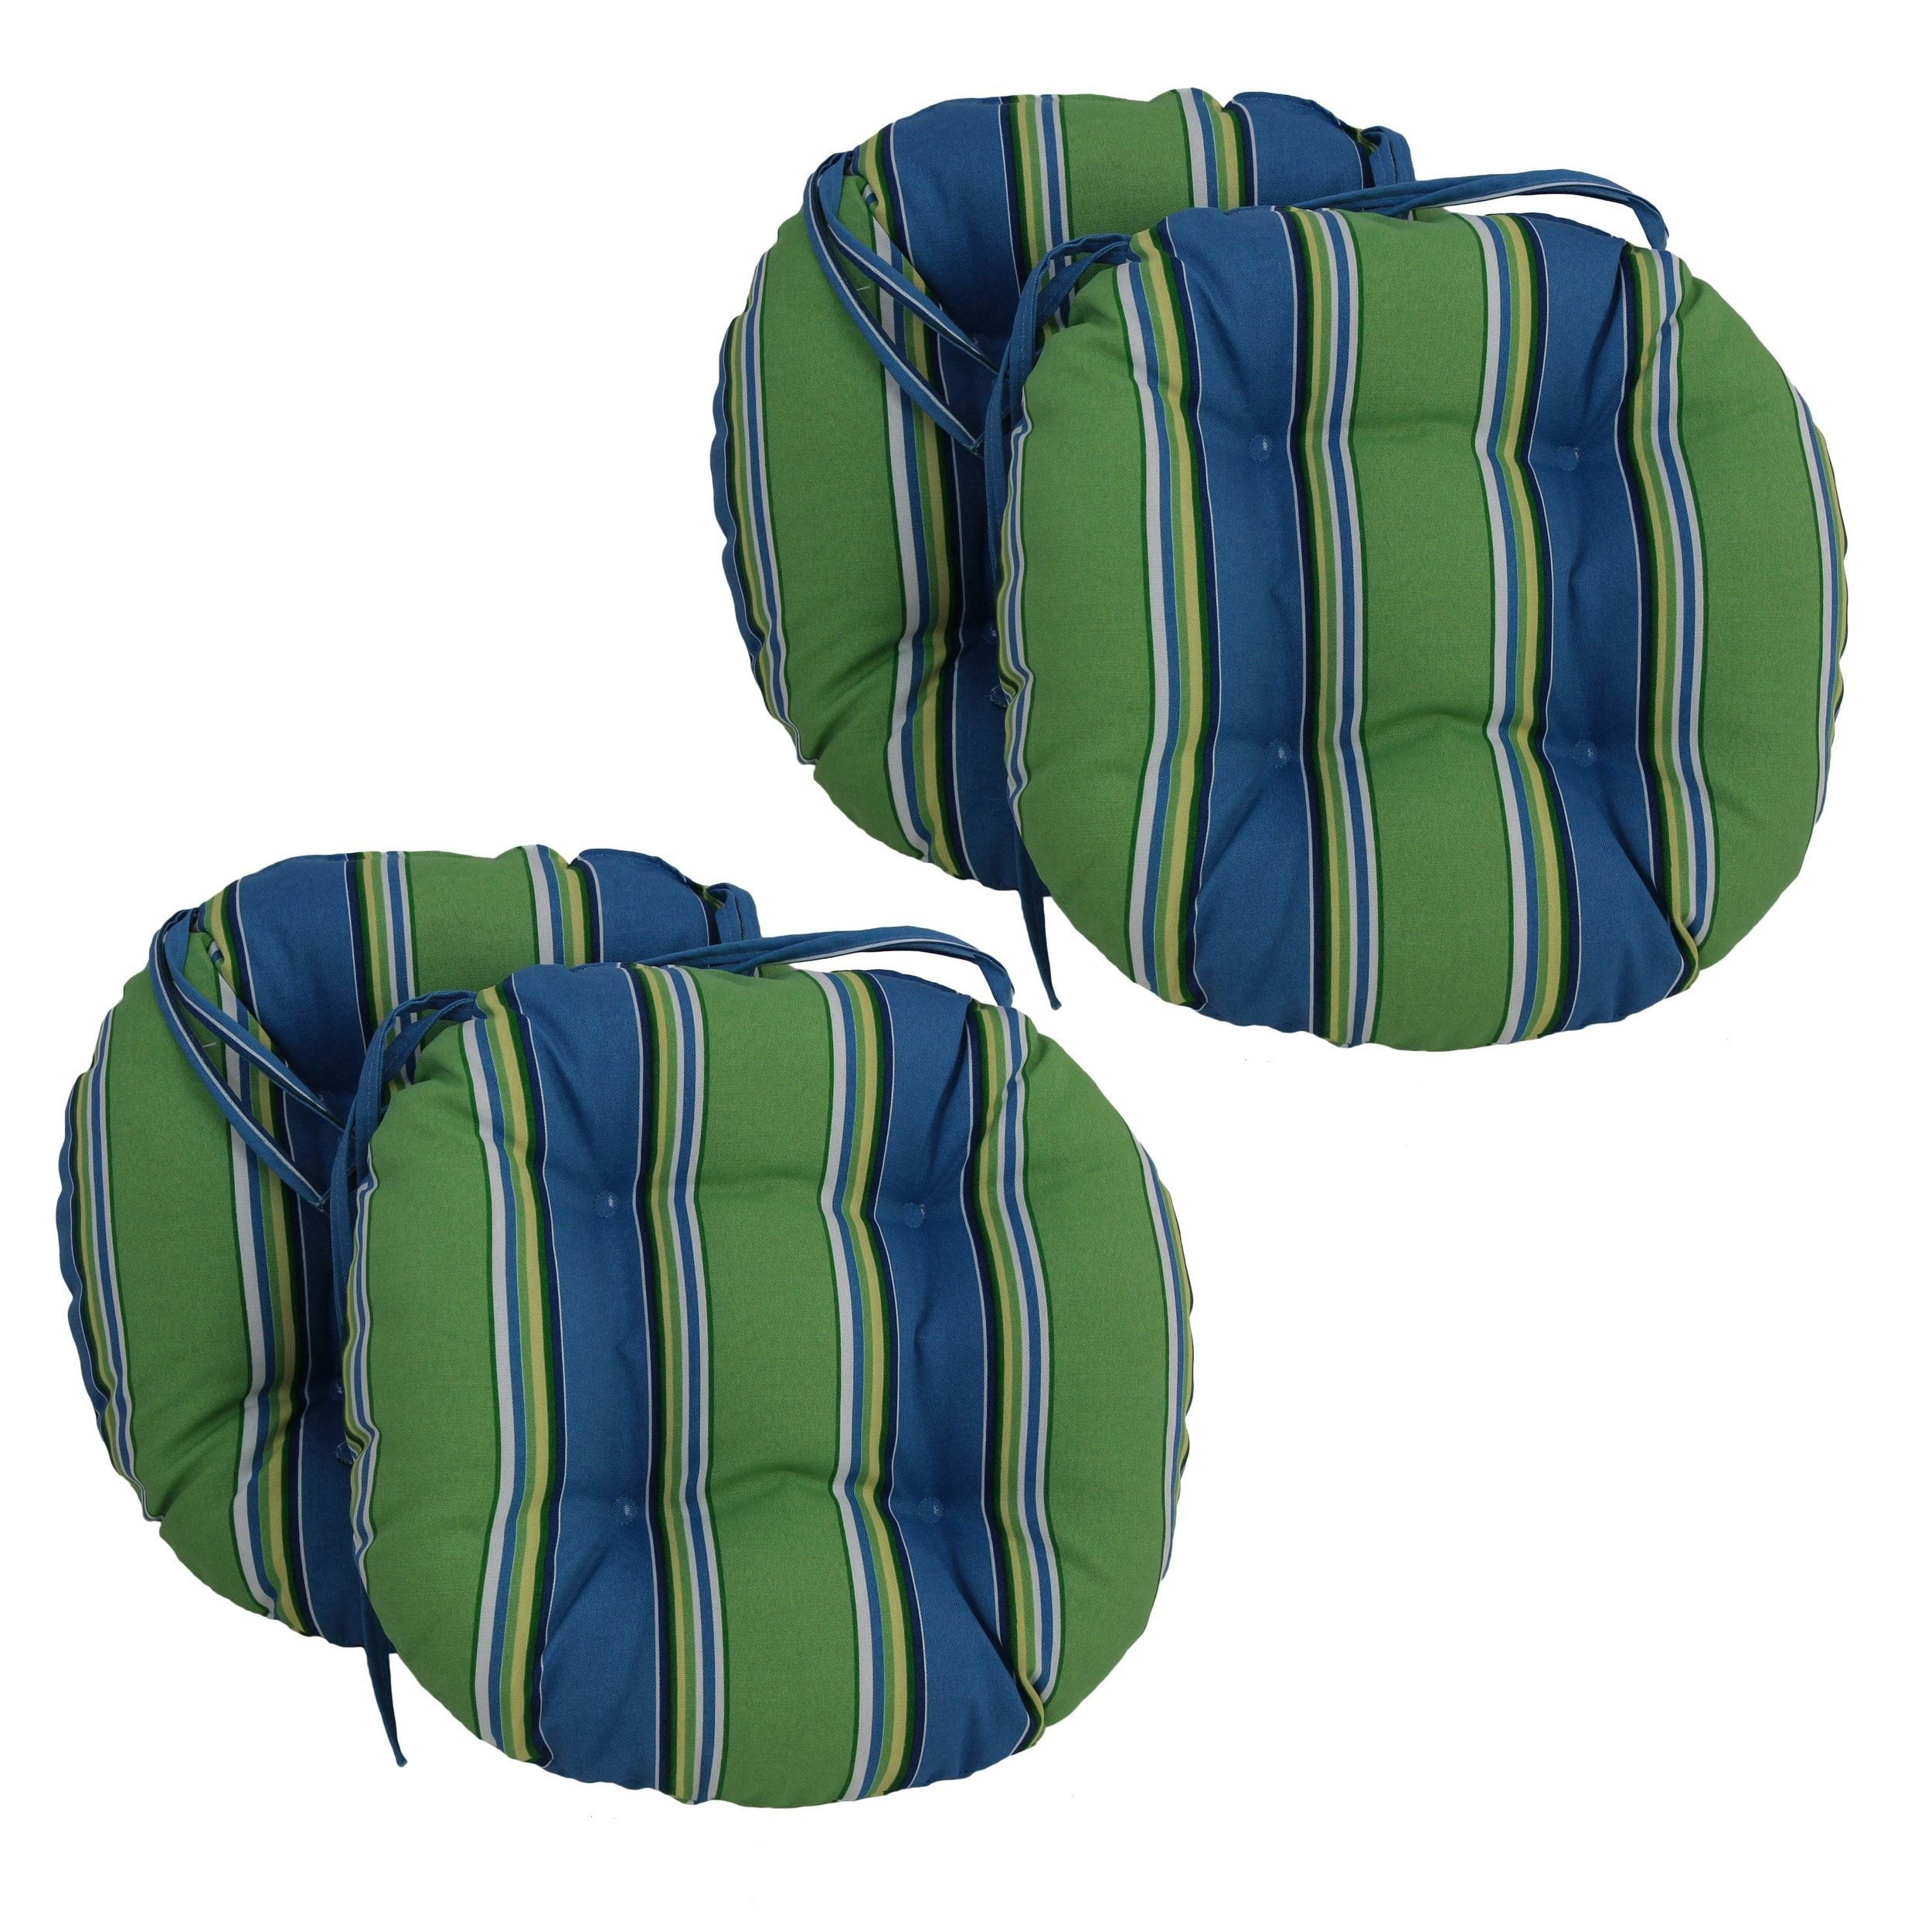 Stupendous Blazing Needles 16 X 16 Inch Round Outdoor Chair Cushions Pabps2019 Chair Design Images Pabps2019Com